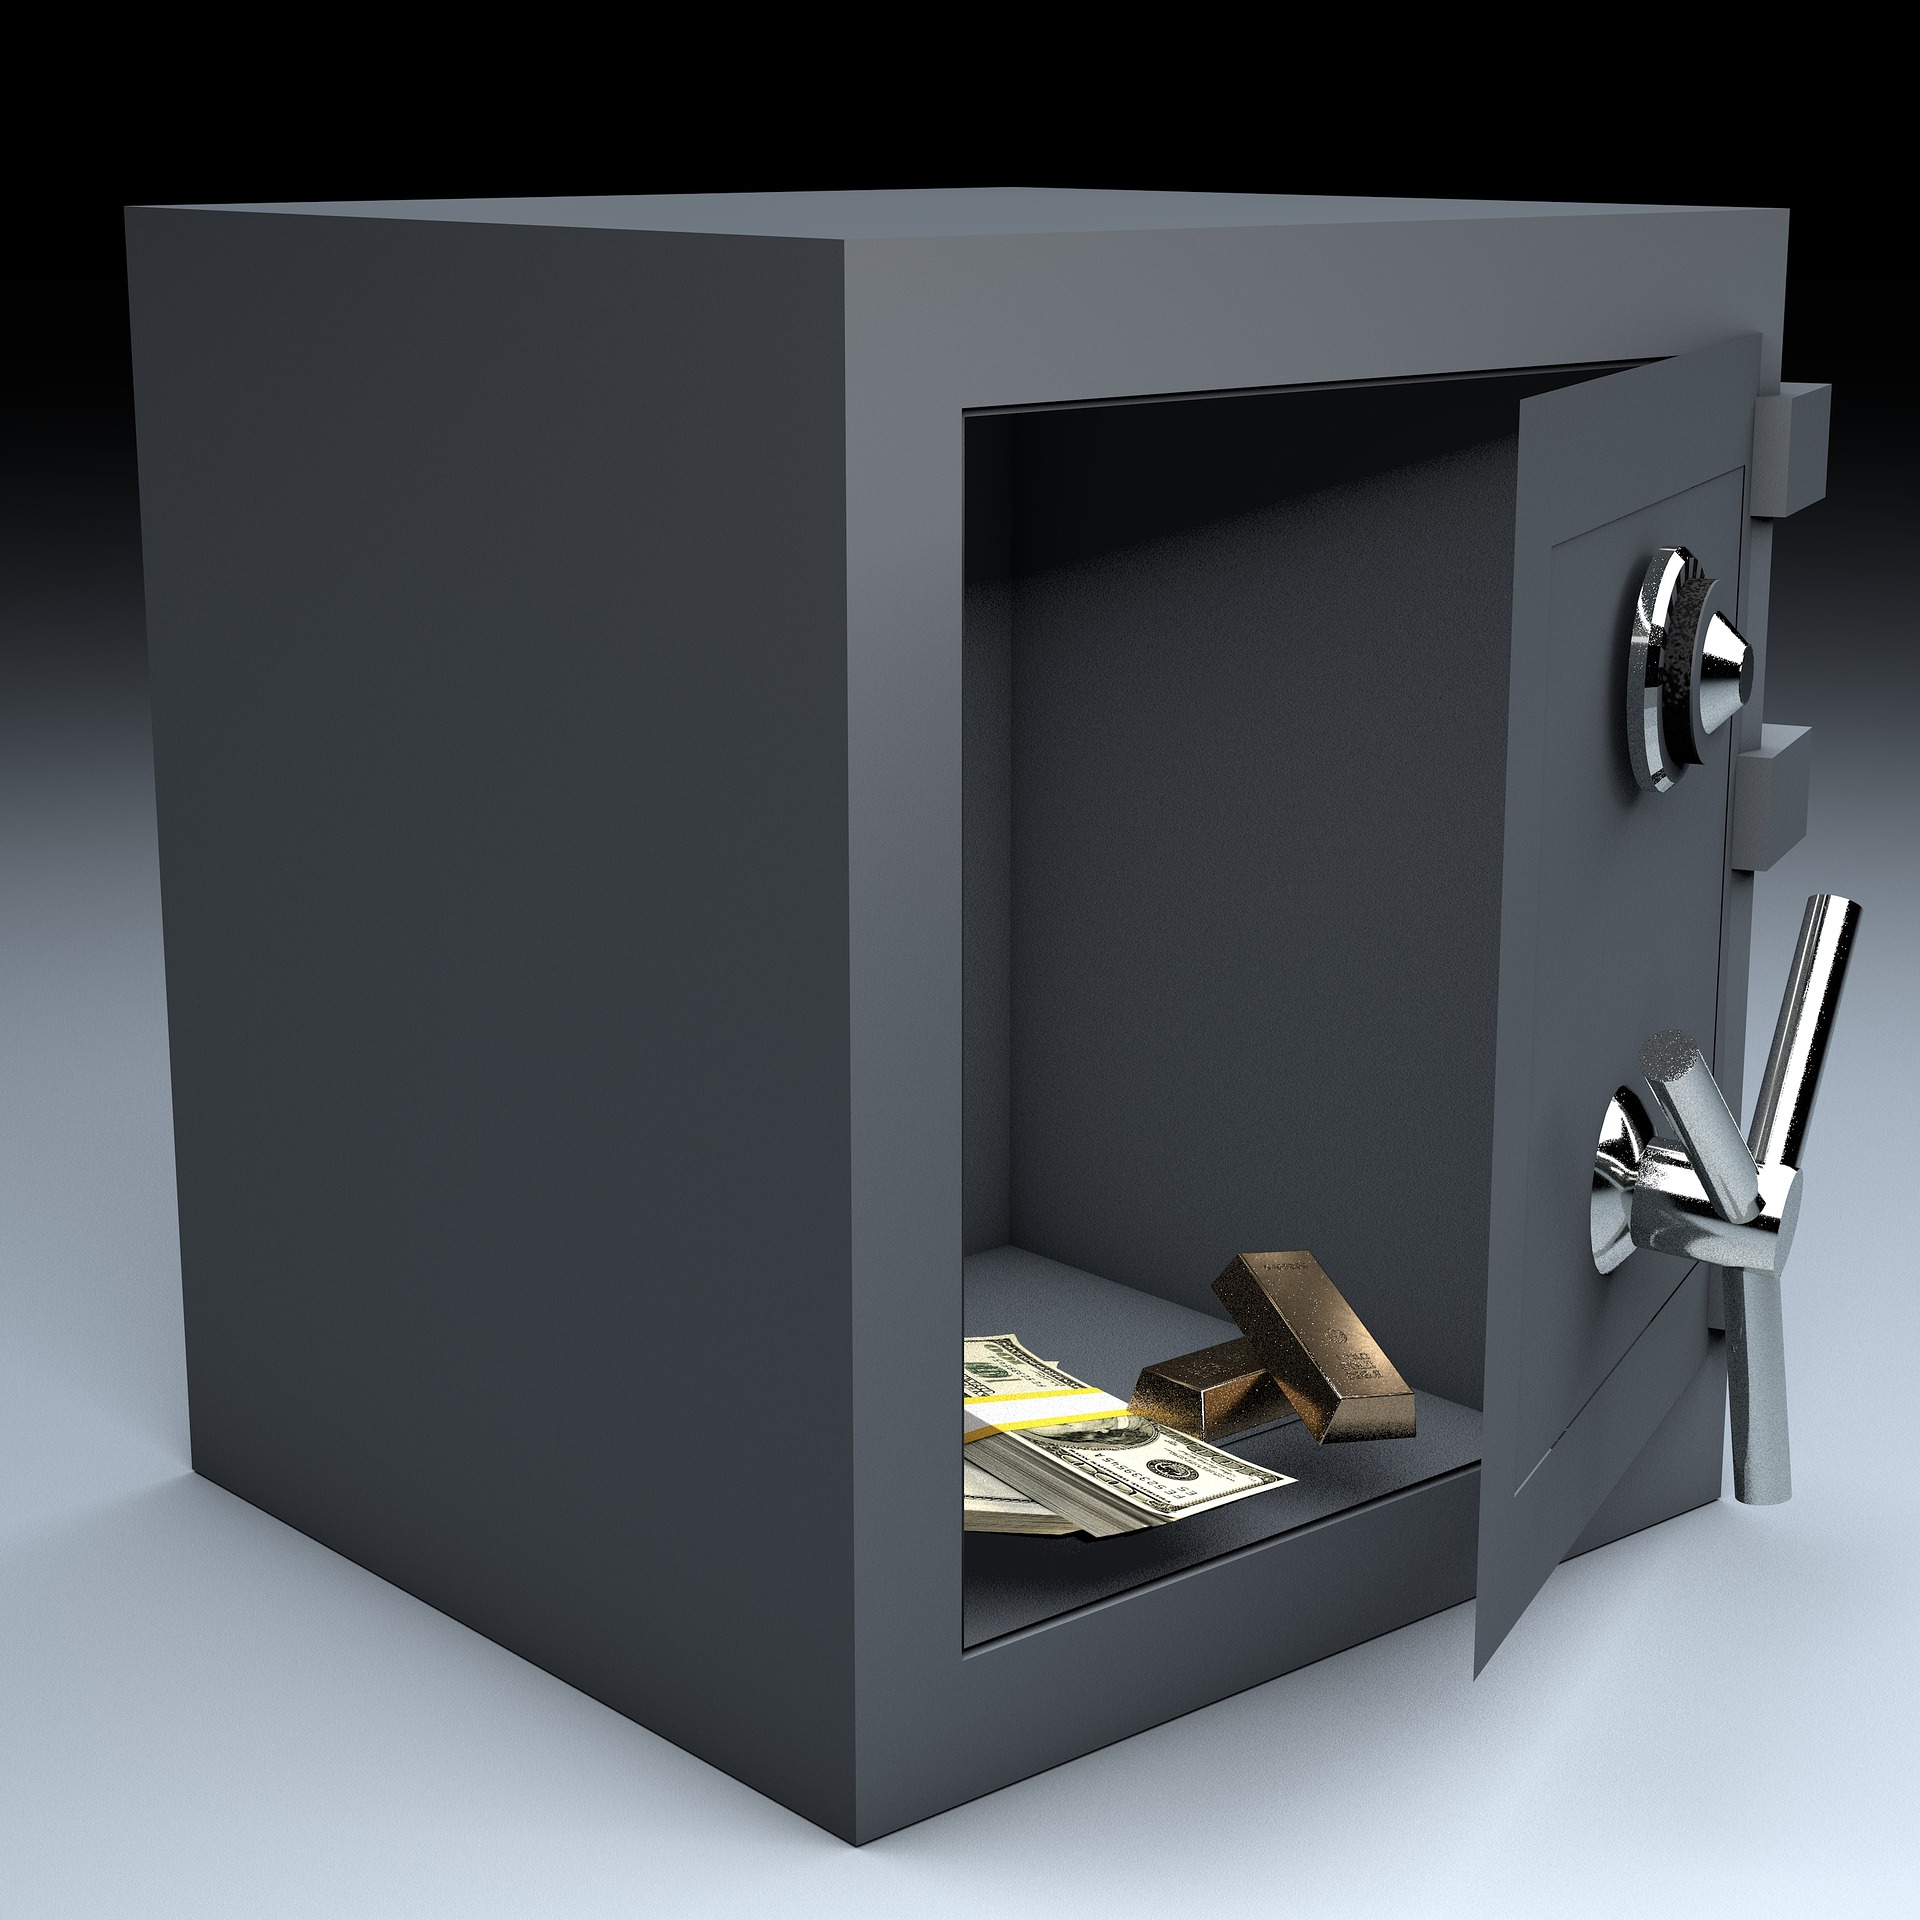 open safe with funds inside